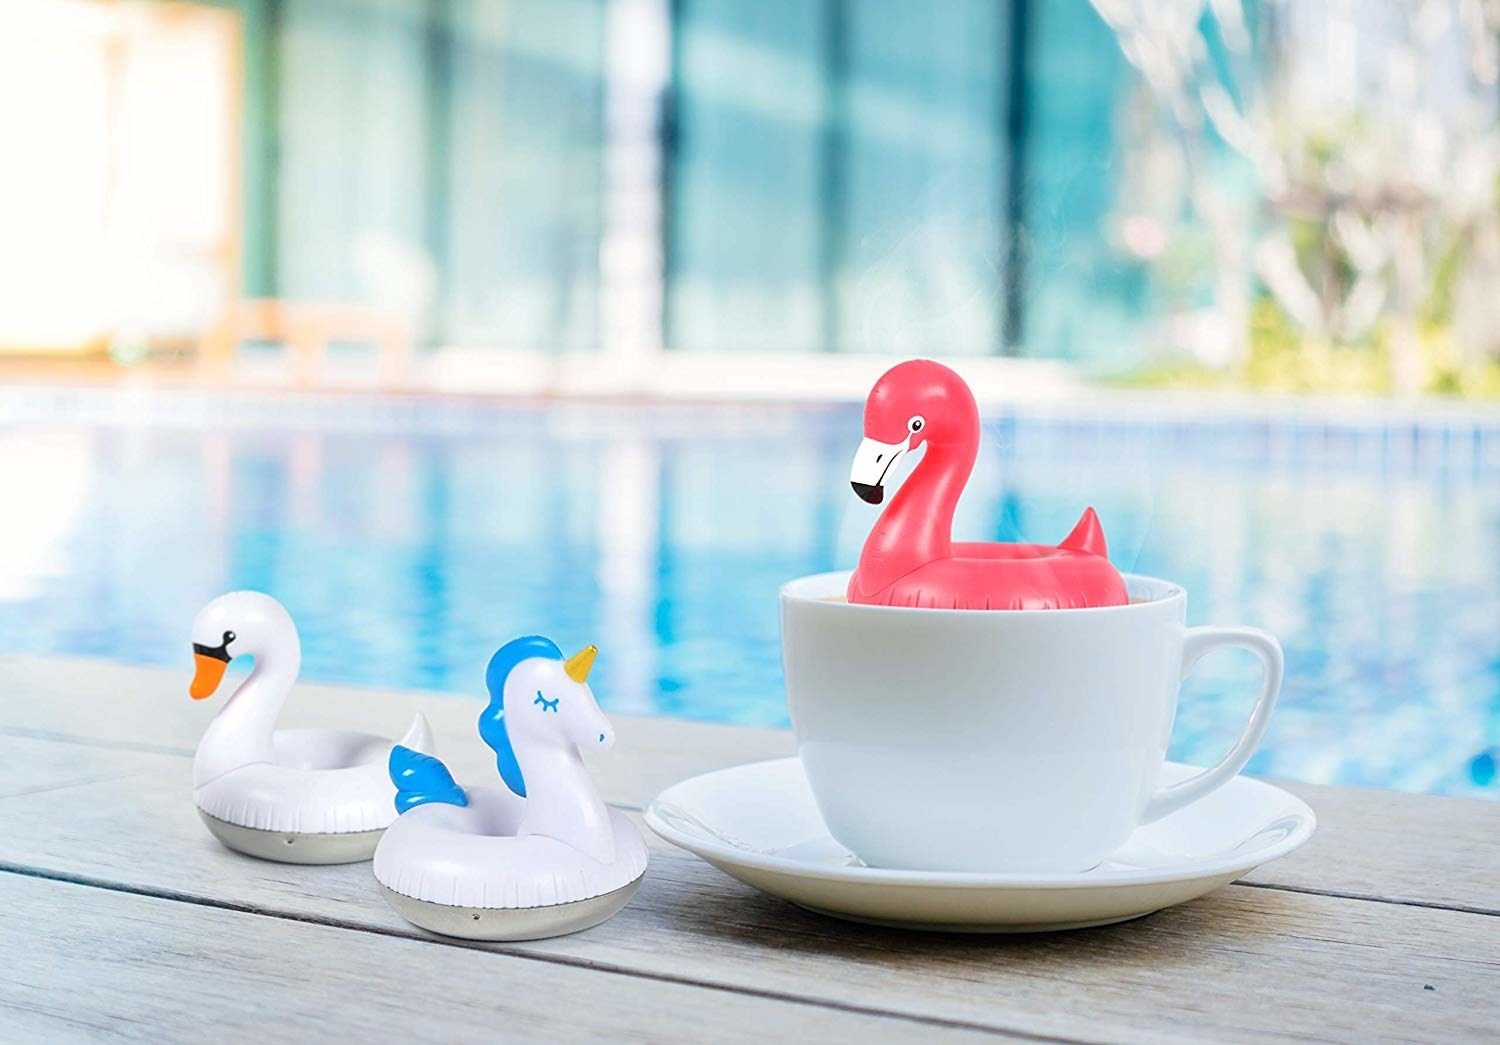 A flamingo diffuser sitting in a cup. There is also a swan diffuser and unicorn diffuser